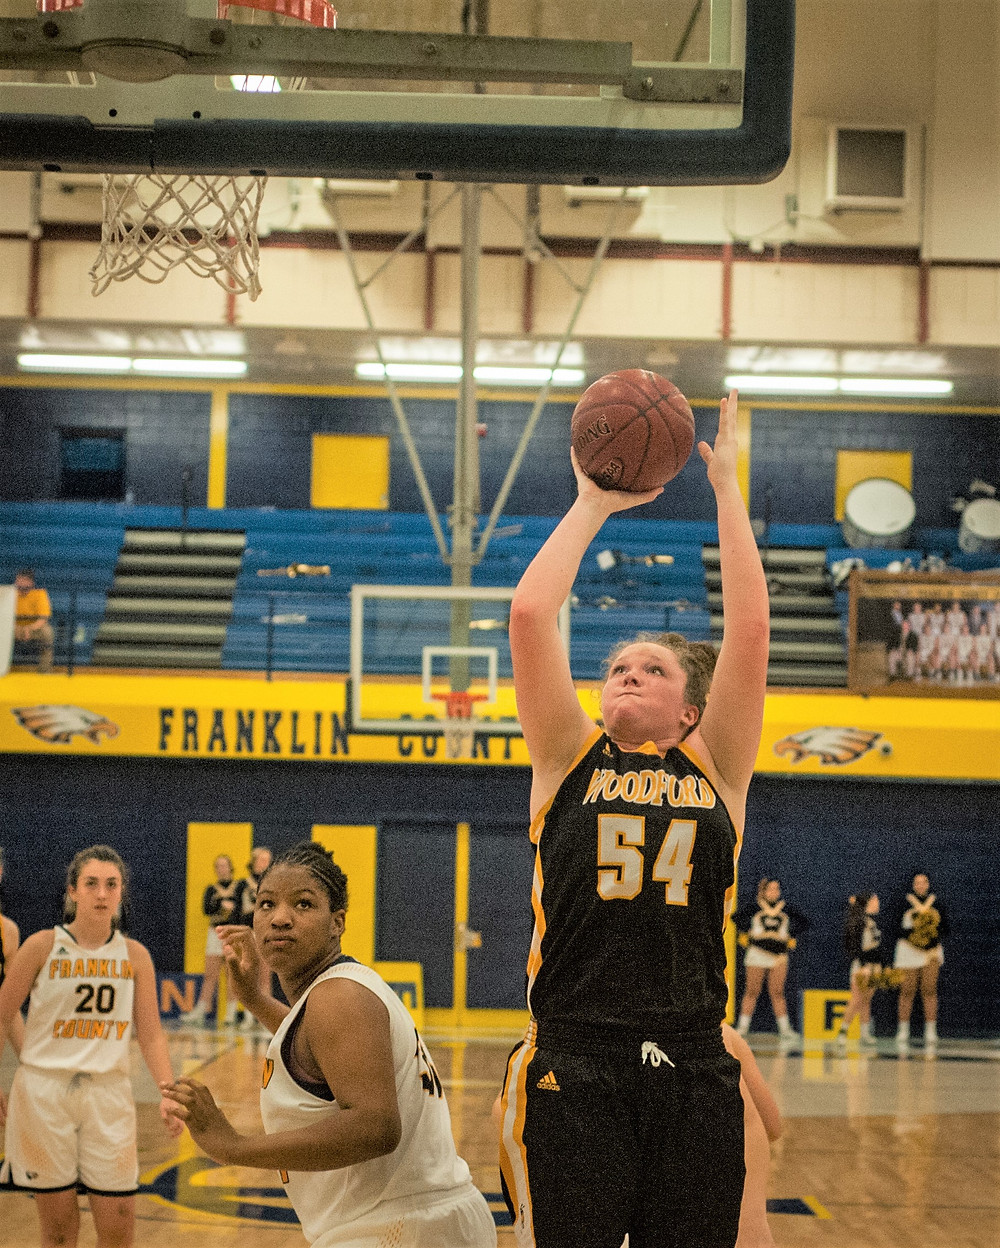 WCHS JUNIOR DELANEY ENLOW hopes to continue her success in the paint this season. She scored 16 points a game last season. (File photo by Bill Caine)